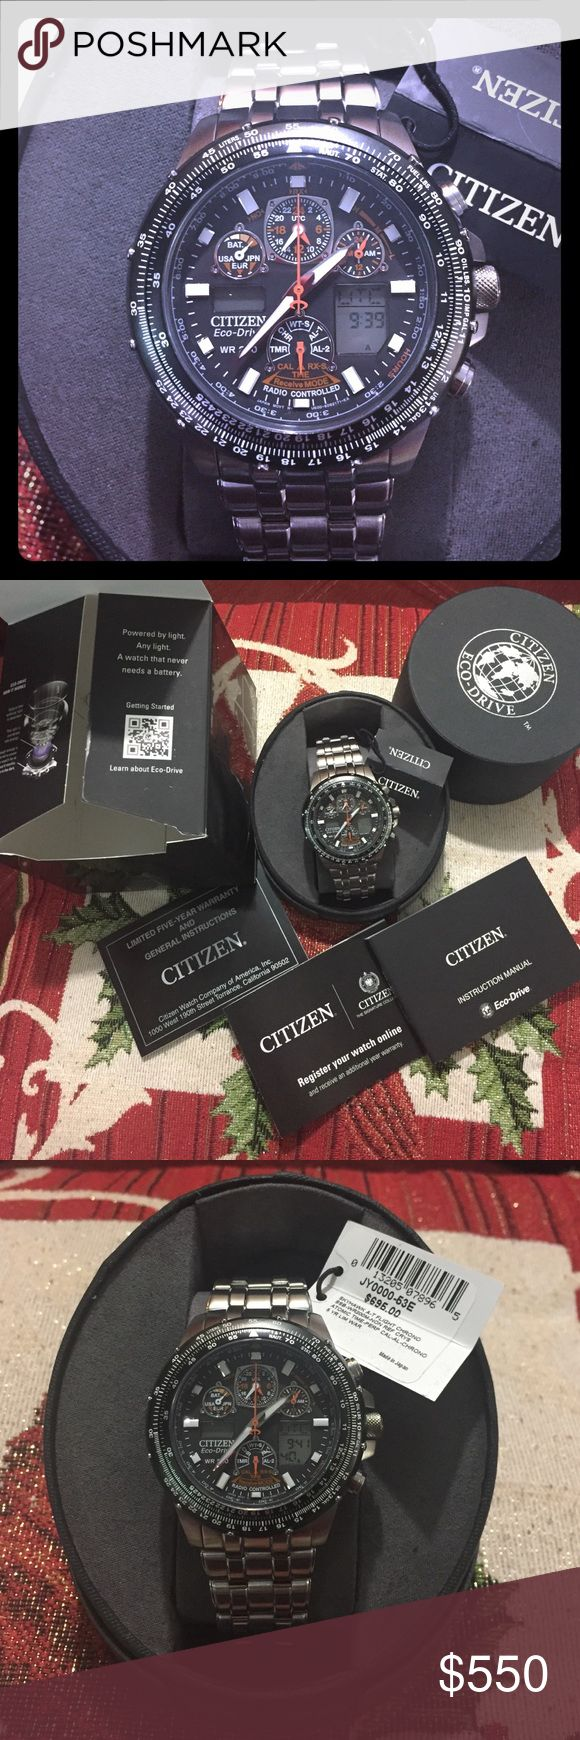 ‼️🎉 SALE 🎉‼️ Citizen Eco-Drive Skyhawk AT watch Mens Citizen Eco-Drive Skyhawk AT Atomic Perpetual Watch JY0000-53E  Radio Controlled (Atomic Timekeeping)  Digital Display of 43 World Cities Perpetual Calendar Multi-Function Chronograph 2 Alarms  Non-Reflective Mineral Glass Crystal Rotating Slide Rule Bezel Stainless Steel Band Push Button Fold Over Clasp  Eco-Drive Technology,Never Need to Change the Battery Charges in Sunlight or Indoors 180-Day Power Reserve Power Reserve Indicator…